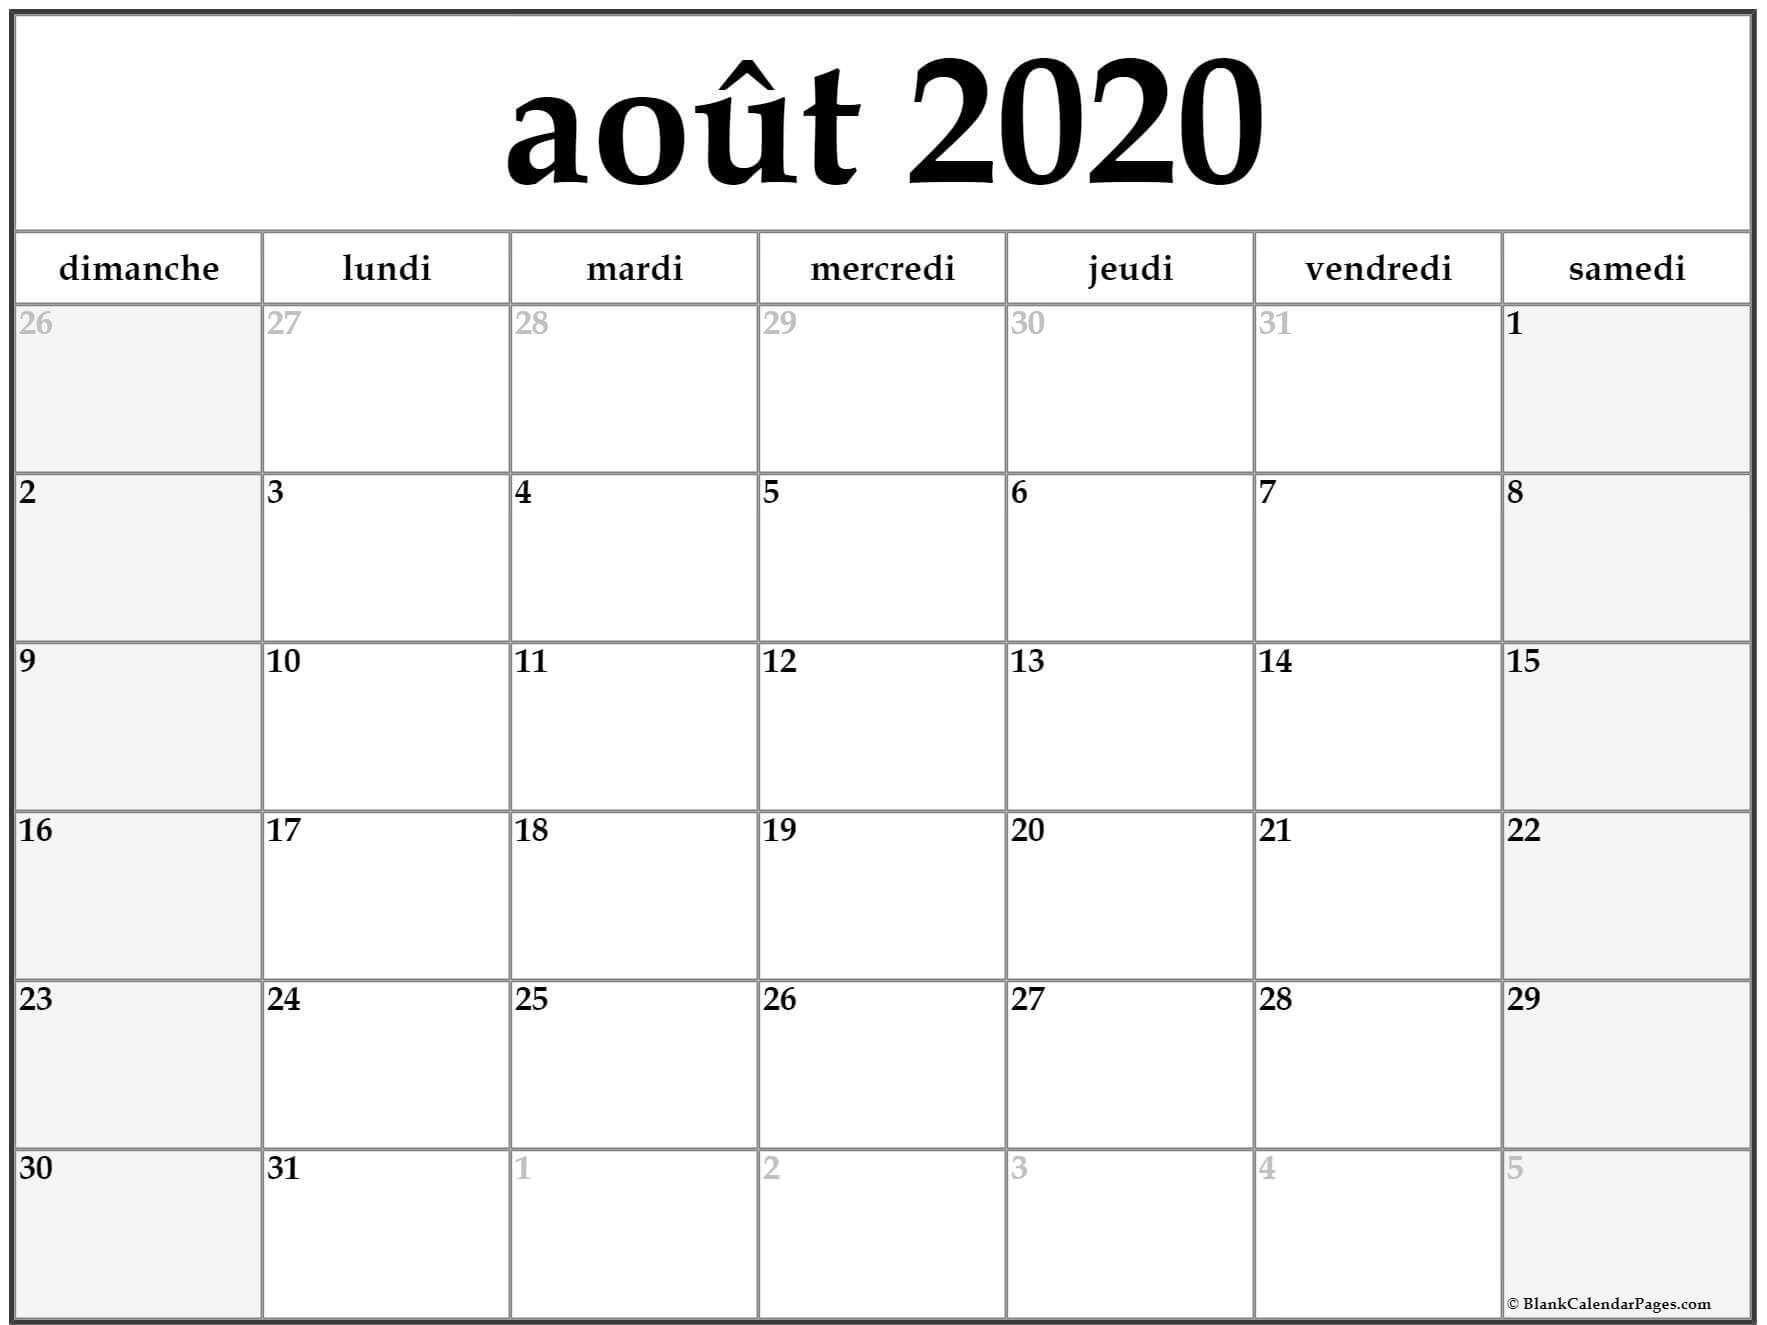 Aout 2020 Calendrier Modele